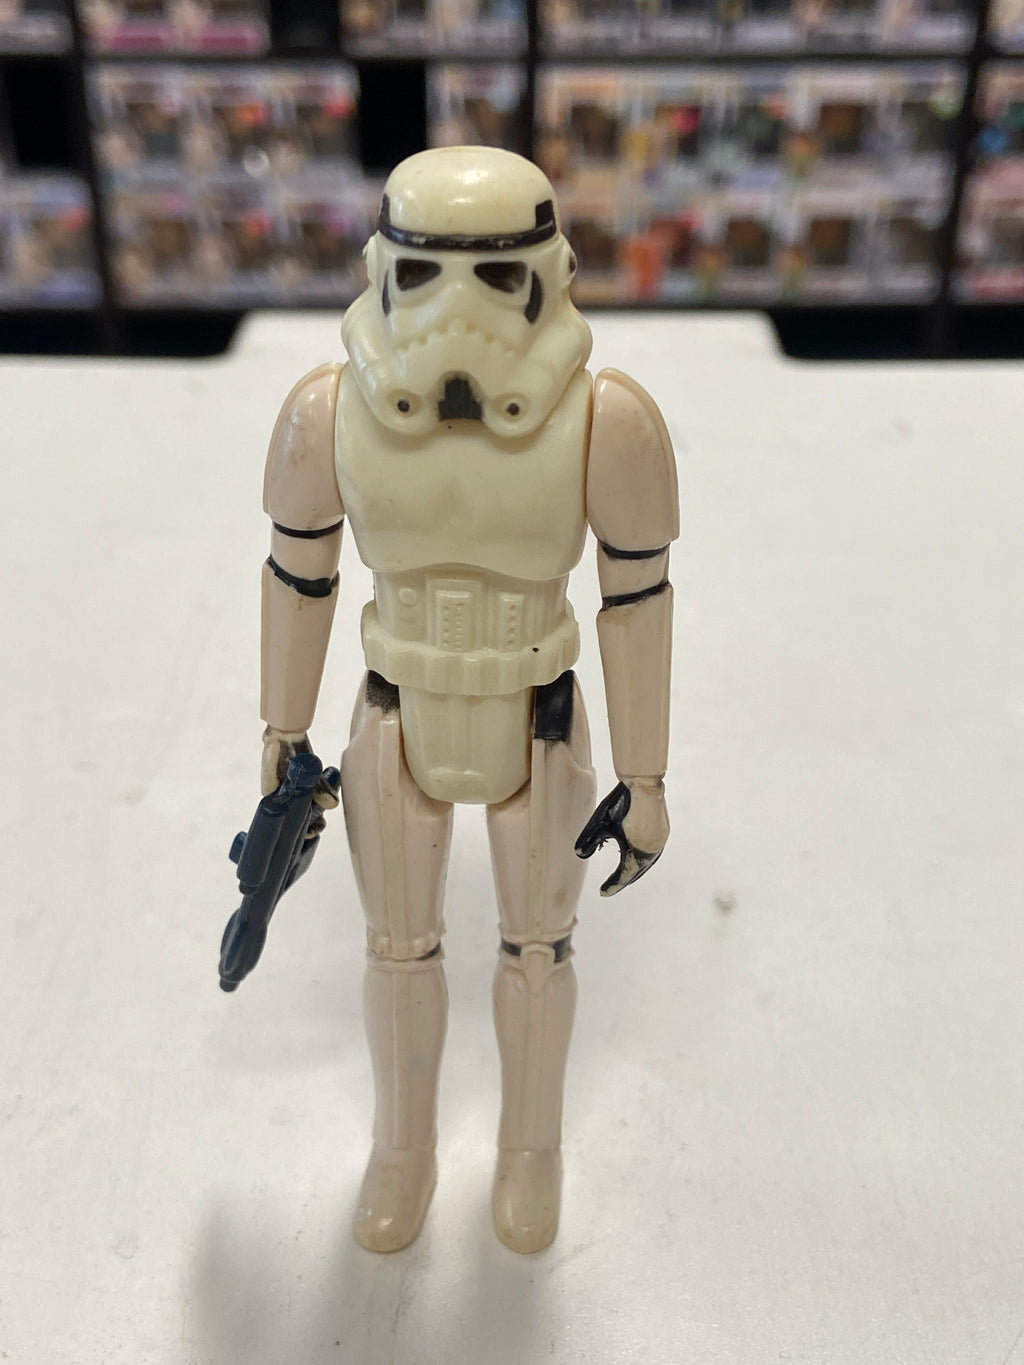 Kenner Star Wars A New Hope vintage Stormtrooper (1977)